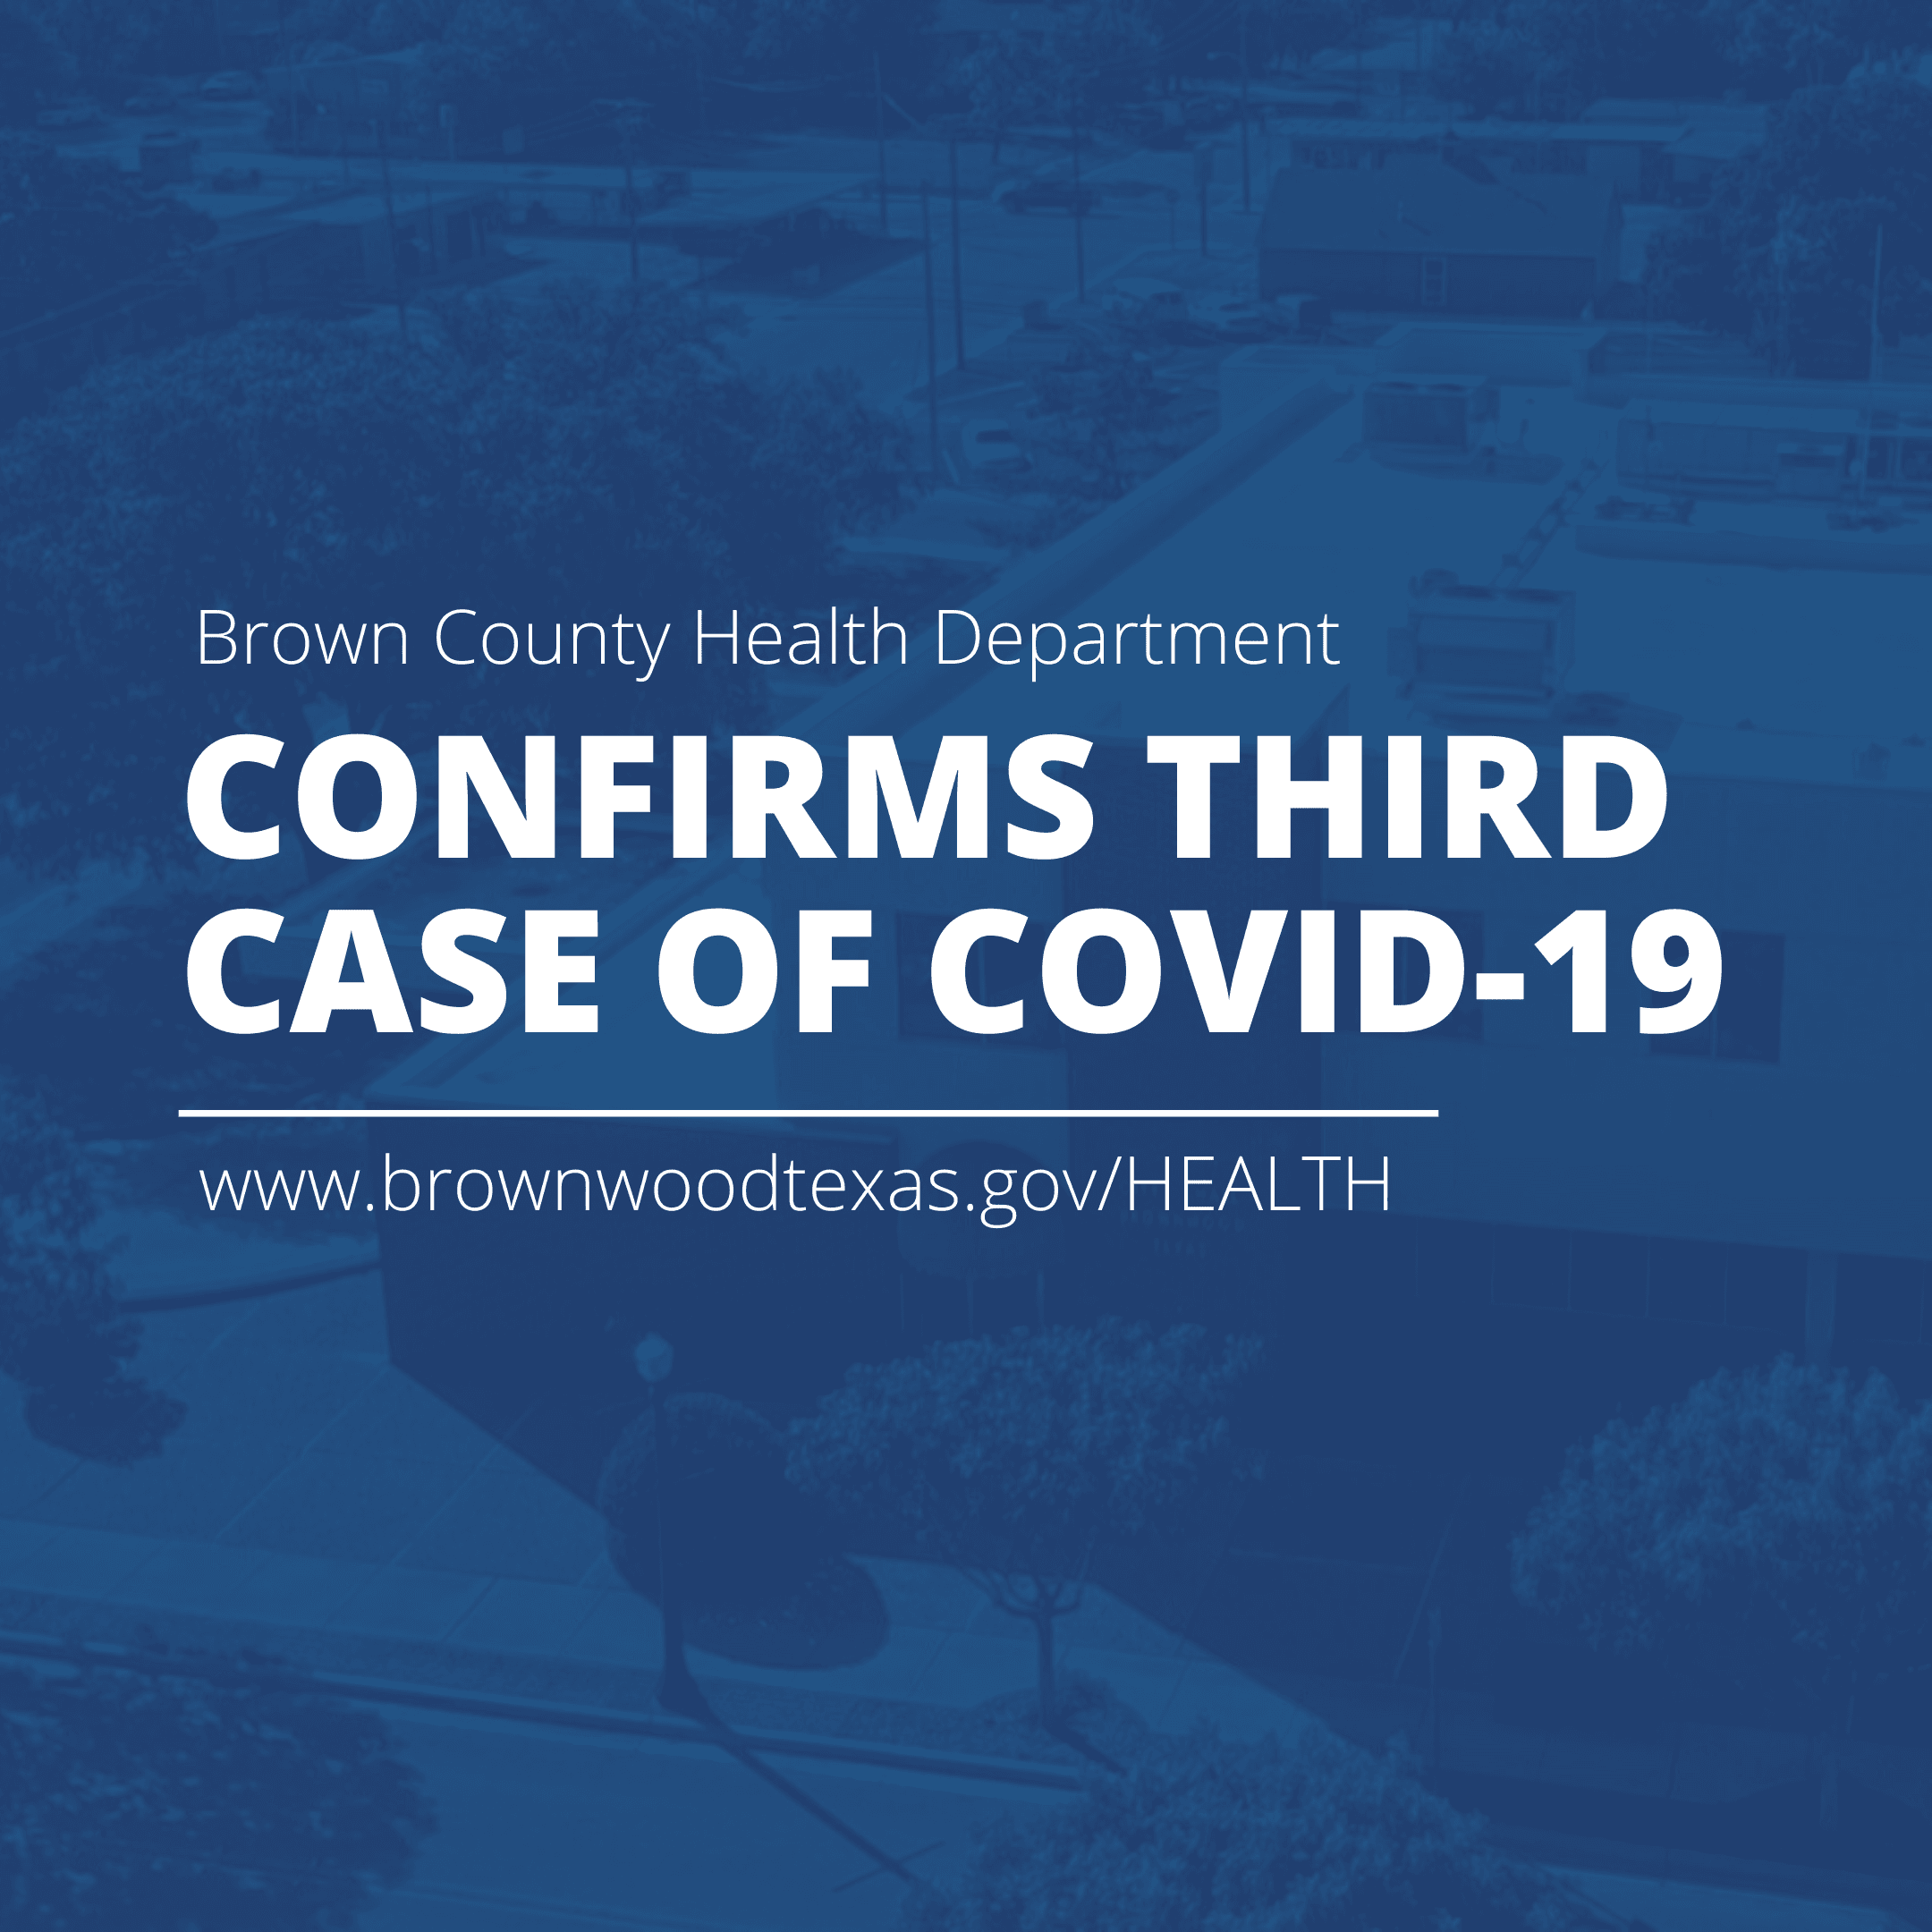 Third Confirmed Case of COVID-19 in Brown County